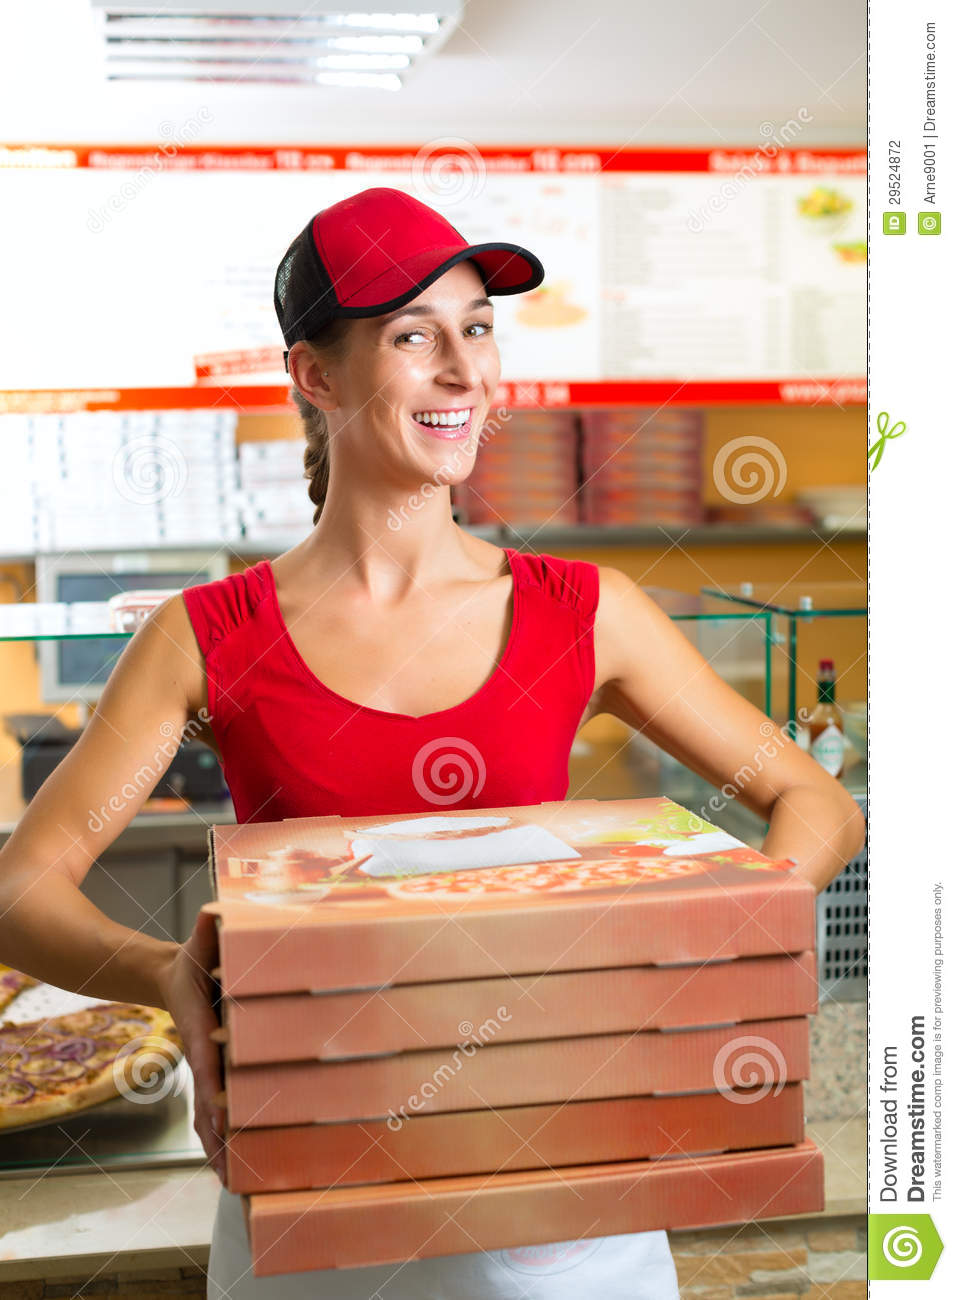 Delivery Service - Woman Holding Pizza Boxes Stock Photo ...